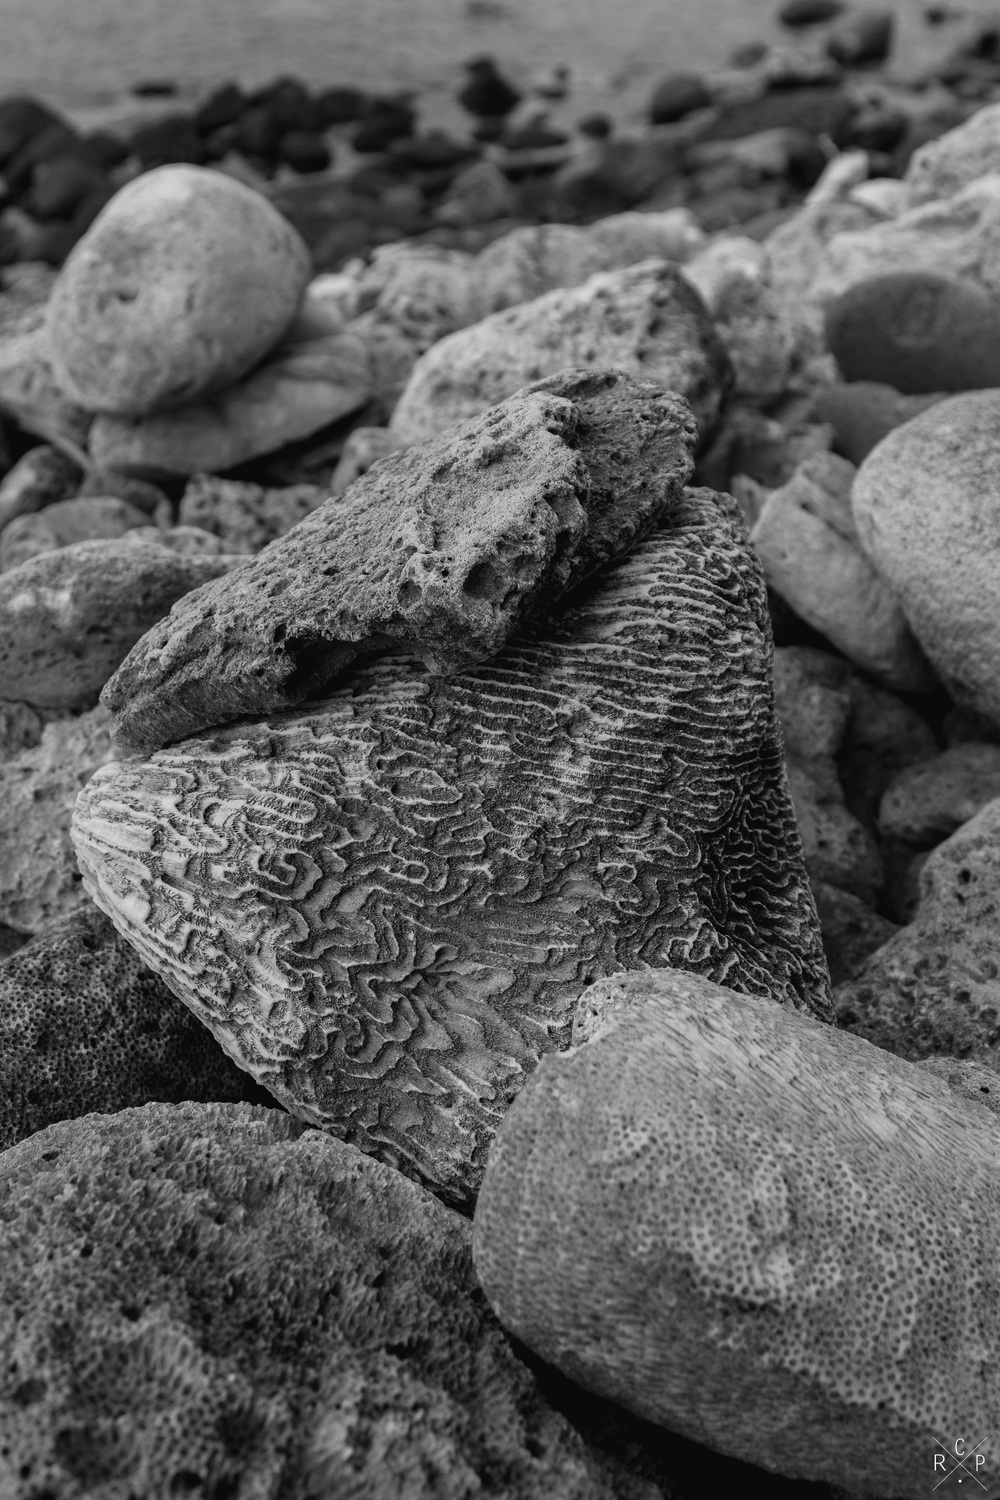 Weathered Rock 1 - Pigeon Island, Saint Lucia 29/03/2016